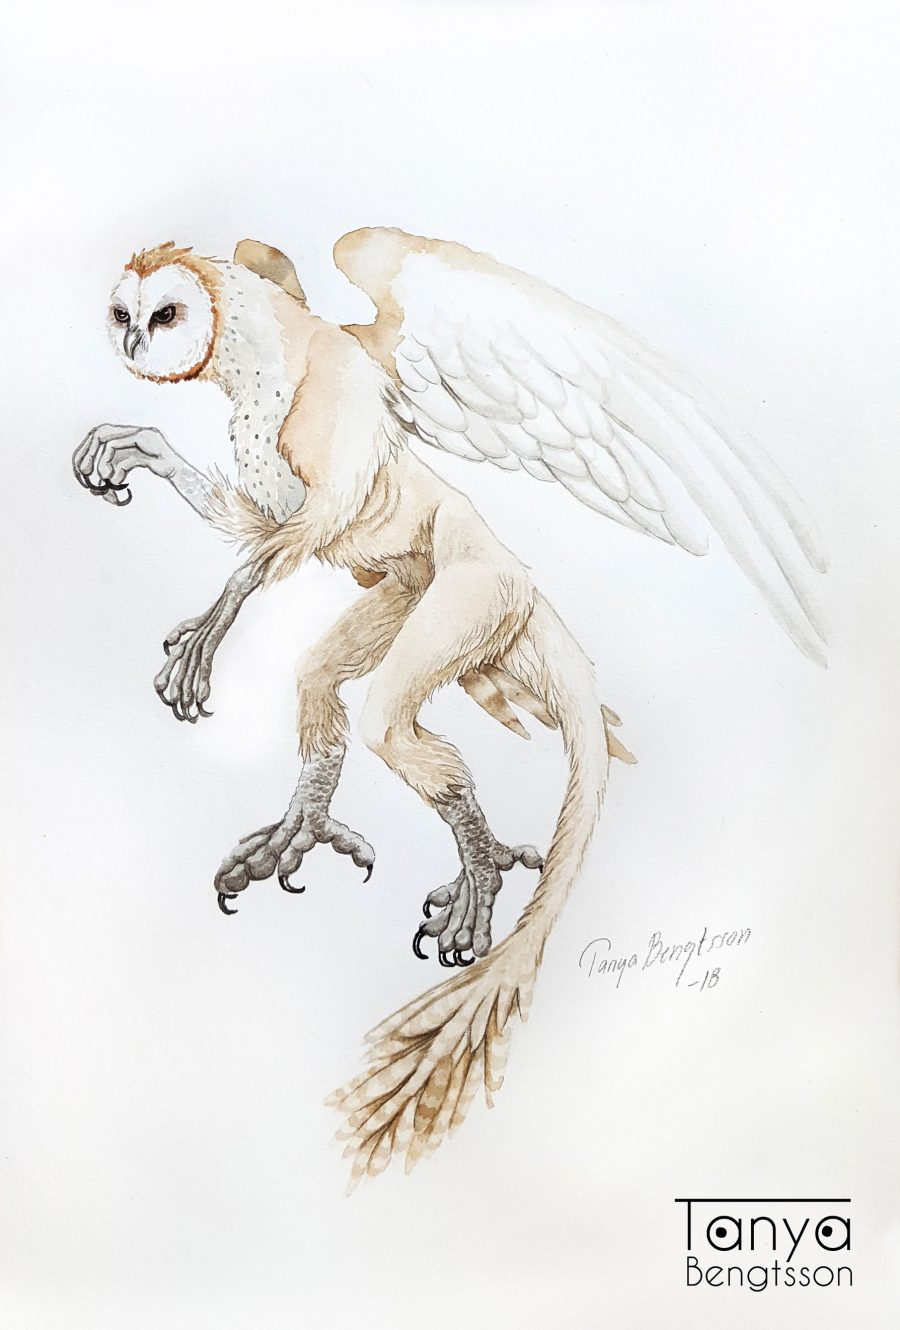 An illustration of a fantasy creature. A mic between a monkey and an owl.